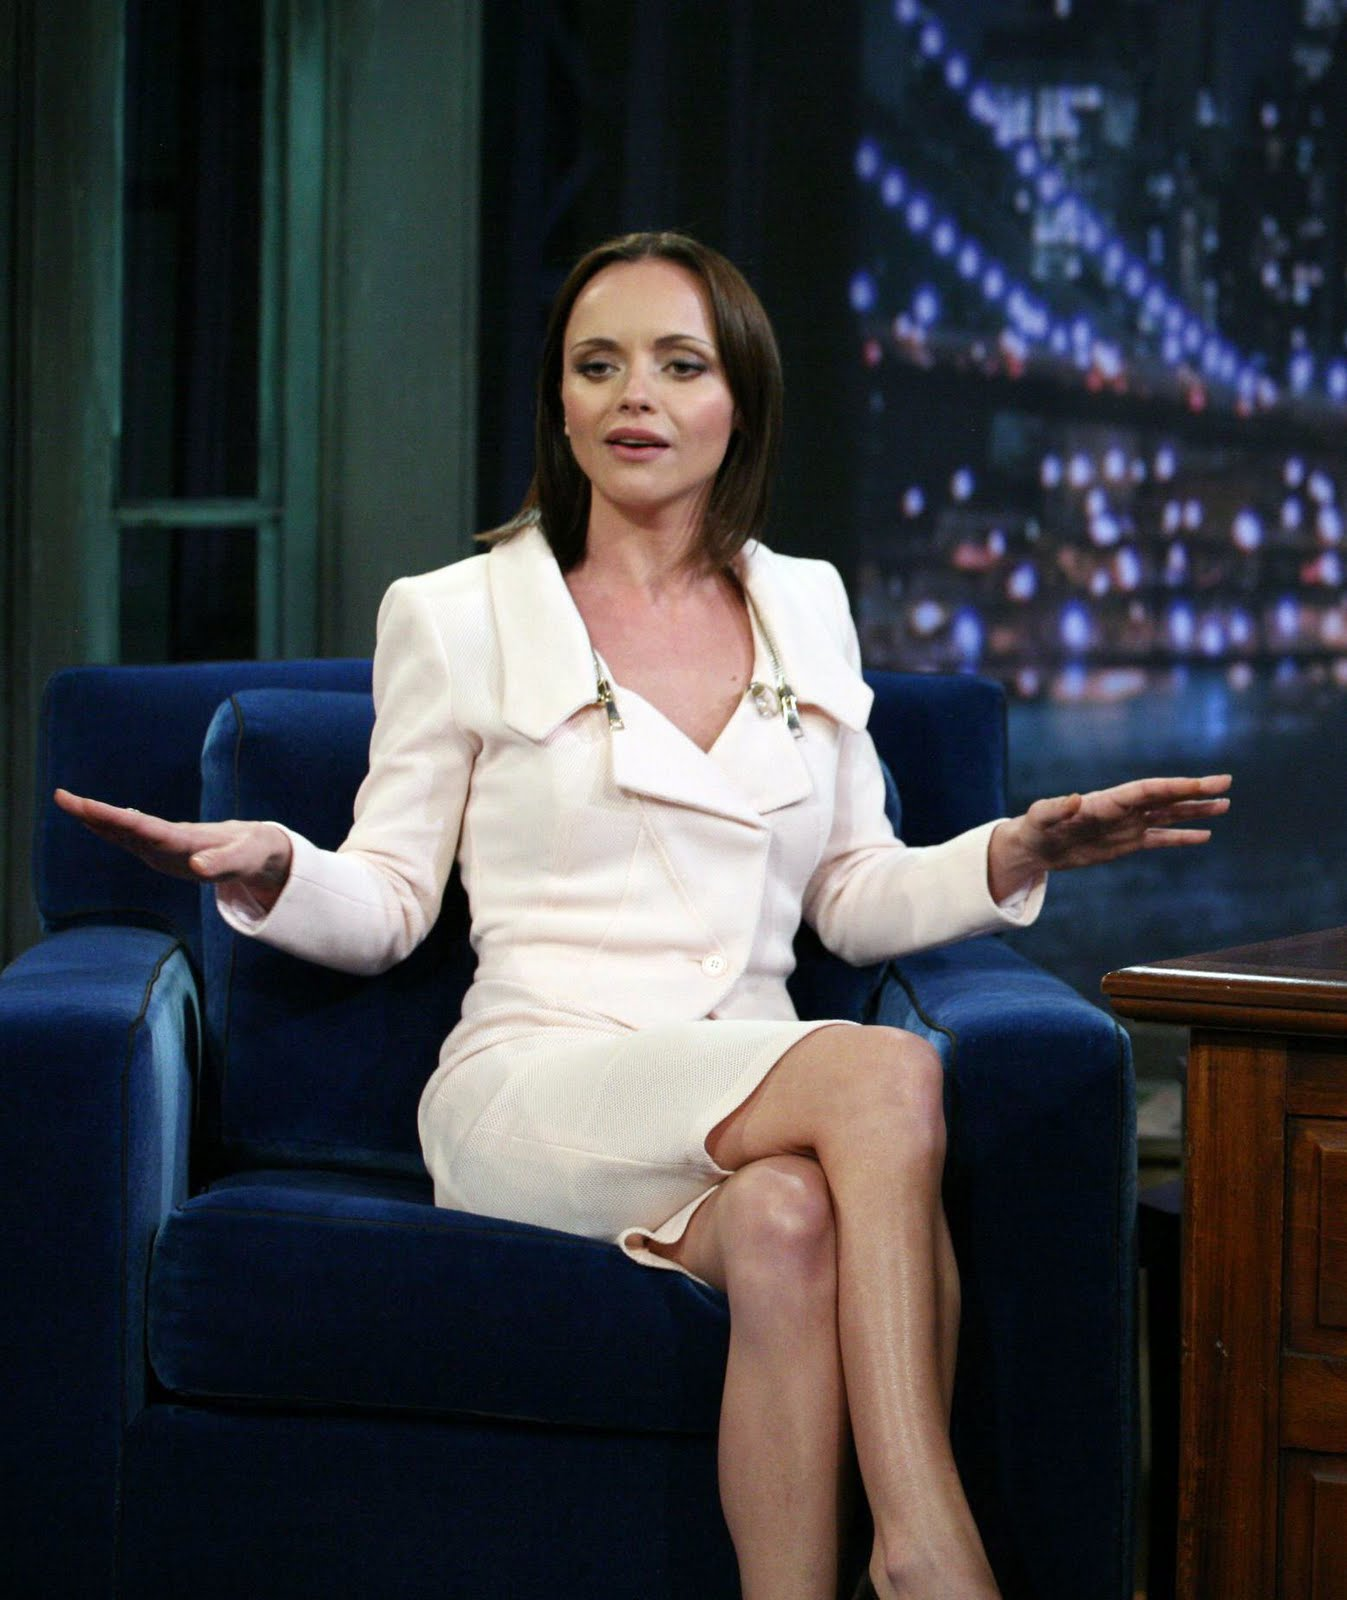 http://4.bp.blogspot.com/-Qod34L5RmcY/TmE1fJS1aMI/AAAAAAAAAlo/8zy9SJhQlw4/s1600/47741_Christina_Ricci_Late_Night_with_Jimmy_Fallon_August_31_2011_02_122_597lo.jpg